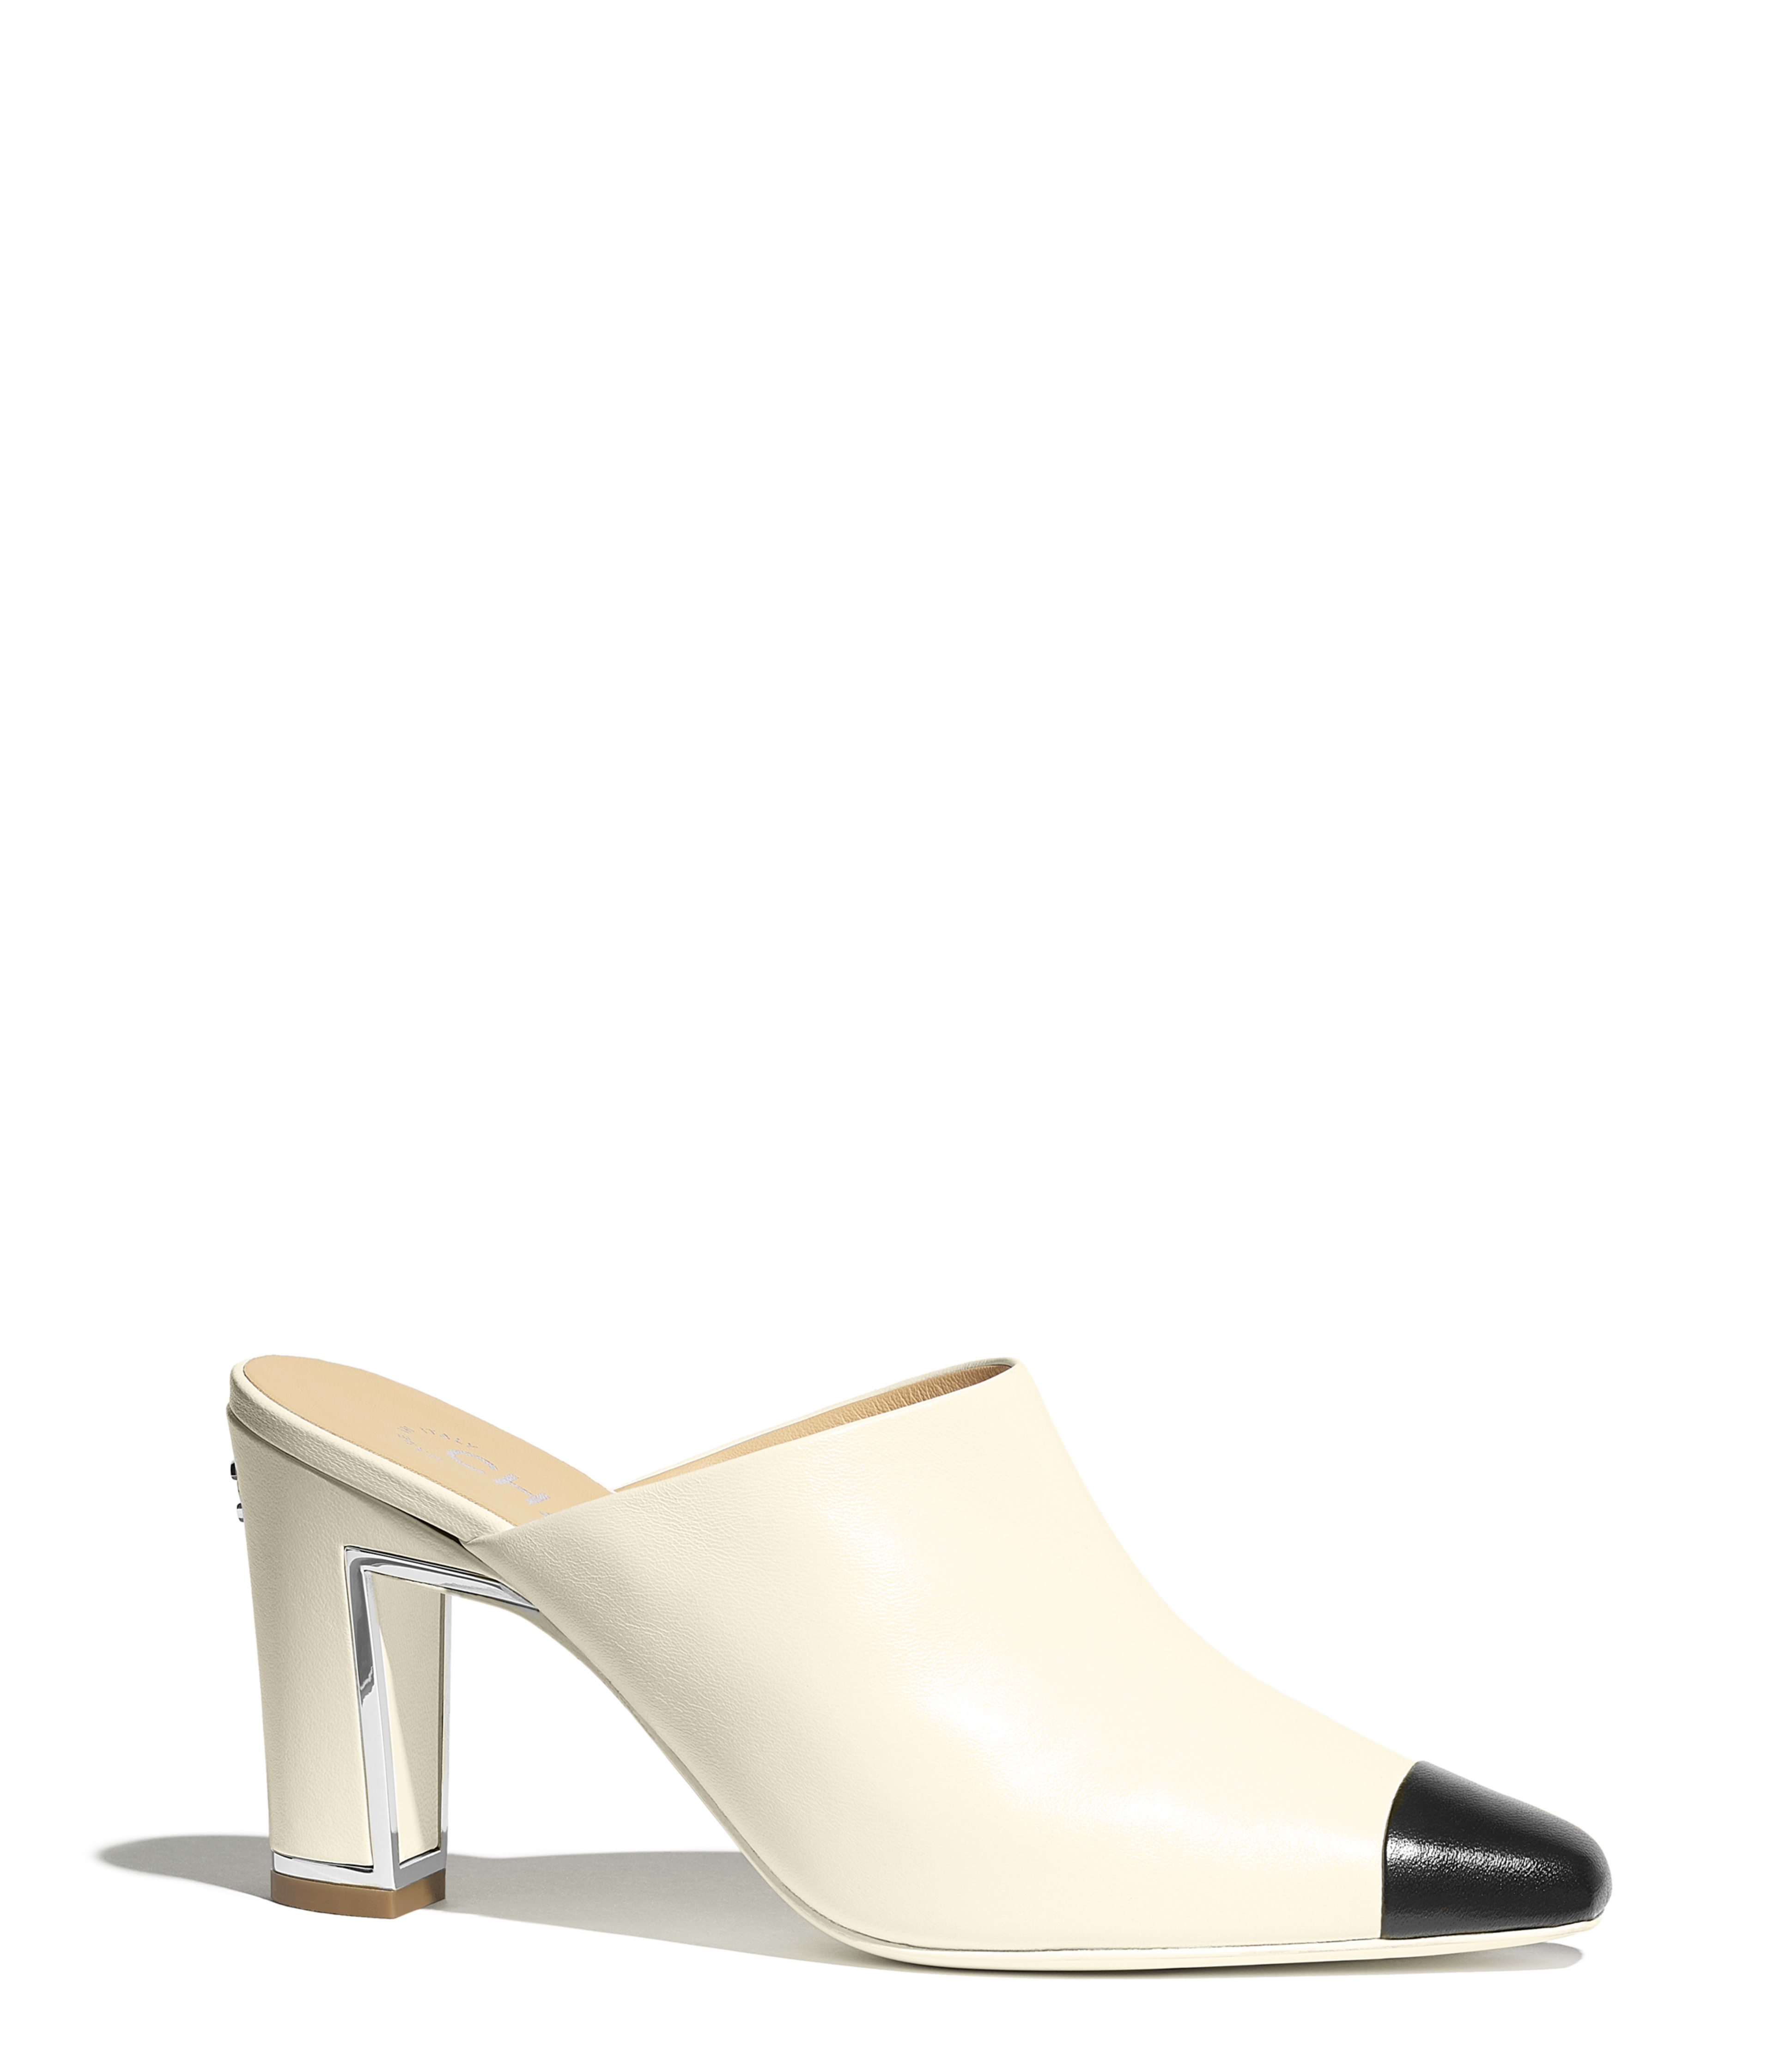 eb9bfd20db6 Sandals - Shoes   CHANEL